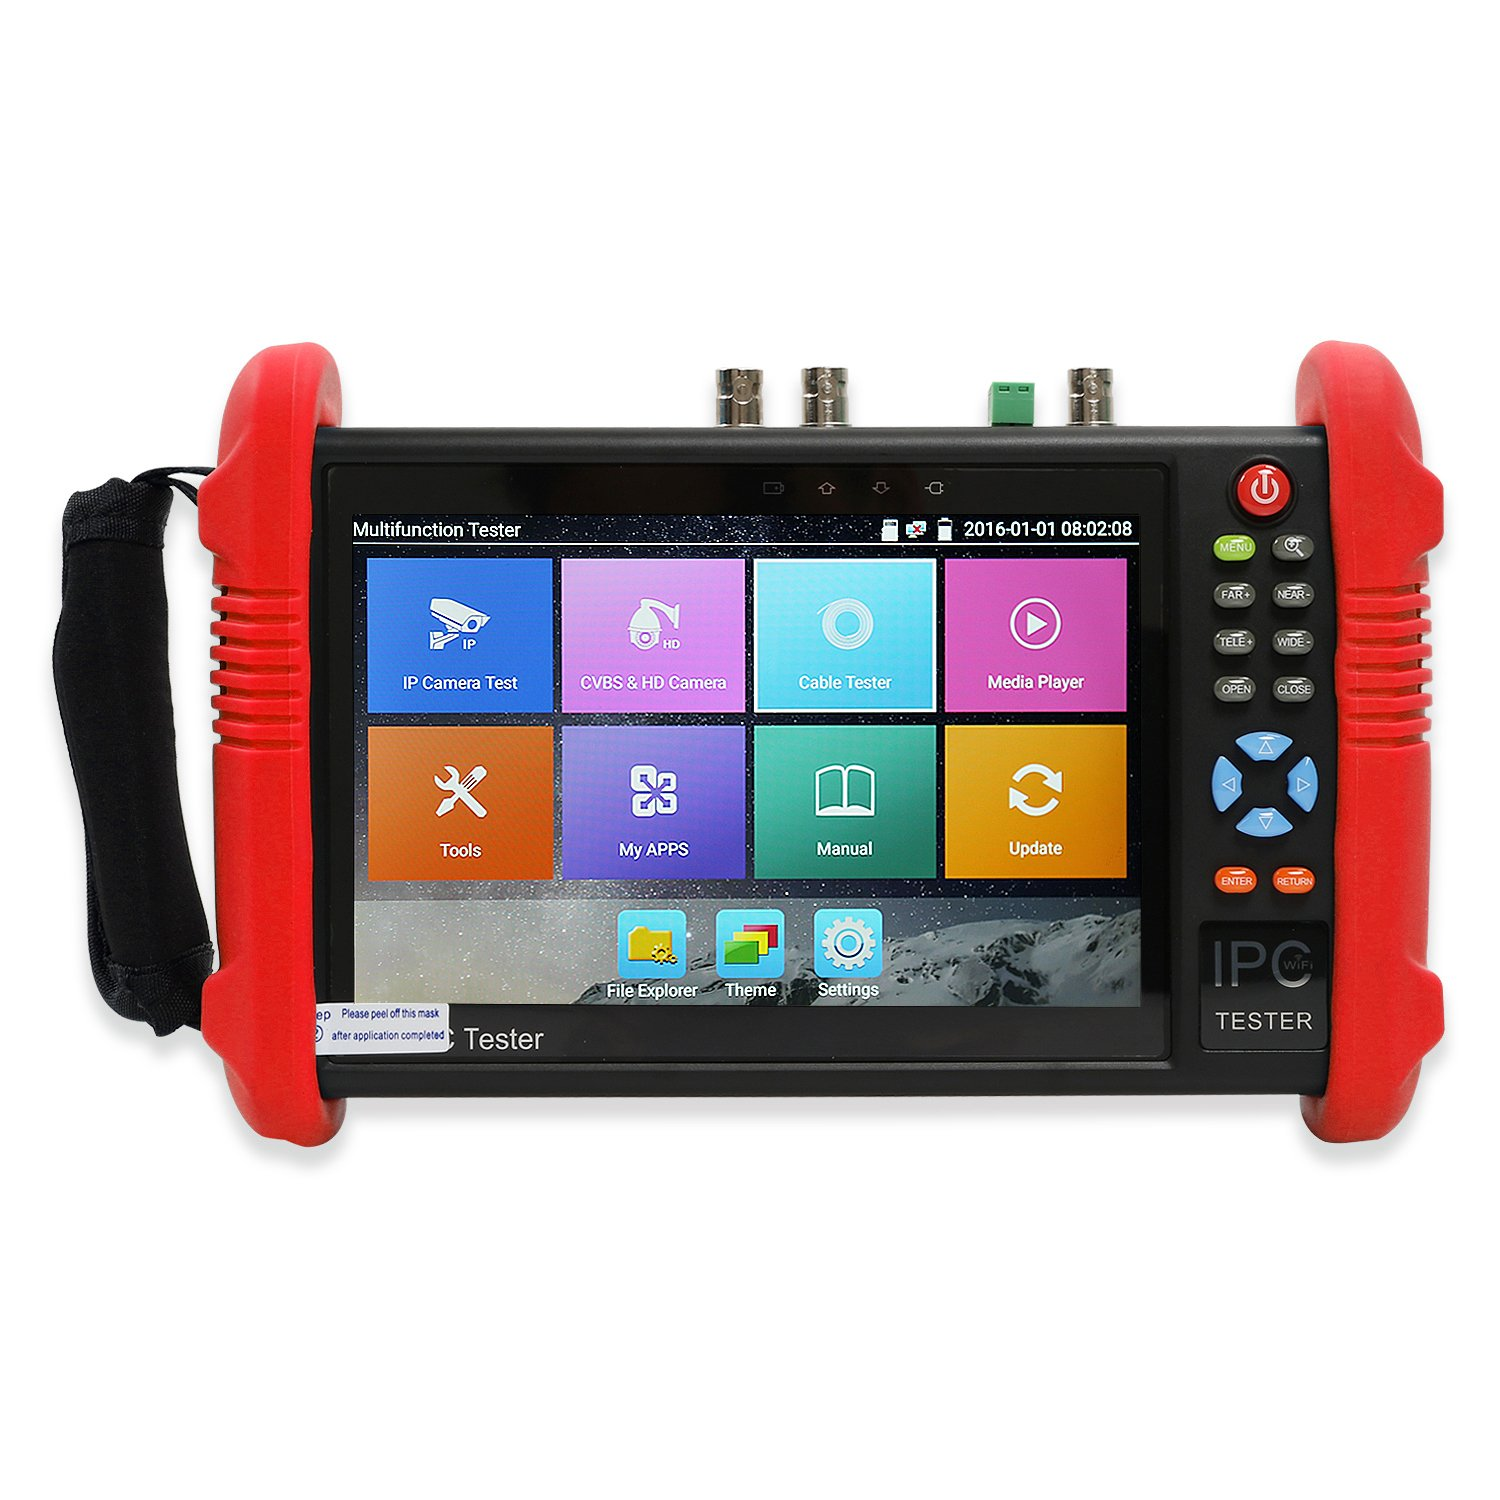 Wsdcam 7 Inch IPS Touch Screen IP Camera Tester Security CCTV Tester CVBS Monitor Analog Tester with SDI/TVI/AHD/CVI/POE/WIFI/4K H.265/HDMI in&Out/RJ45 TDR/Firmware Upgraded 9800ADHS-Plus (Red) by wsdcam